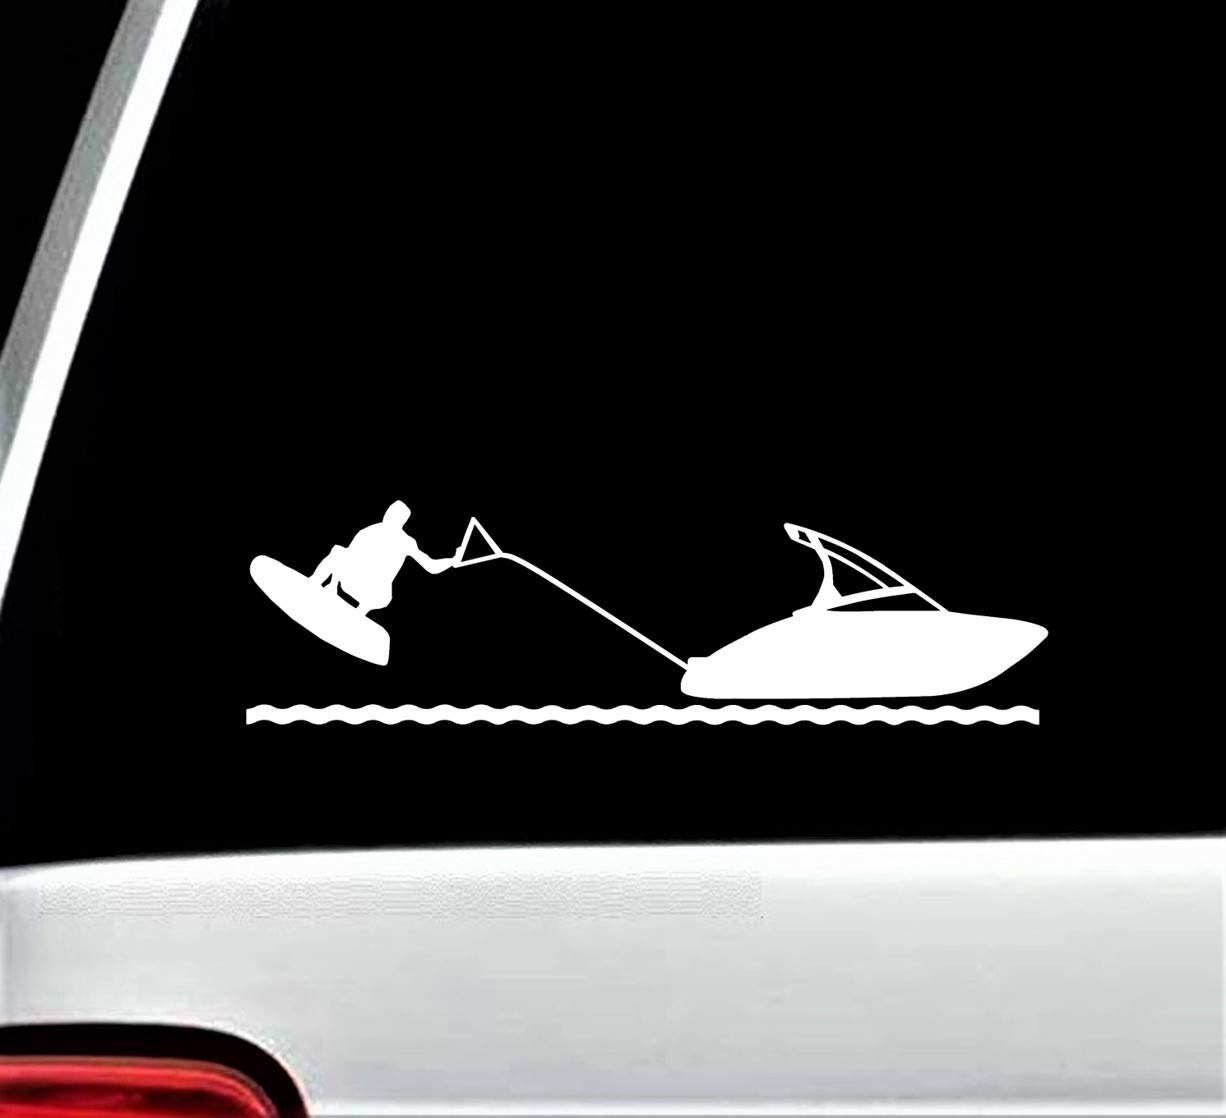 Wakeboard Water Skiing Speedboat Decal Sticker for Car Window 8 Inch BG 432